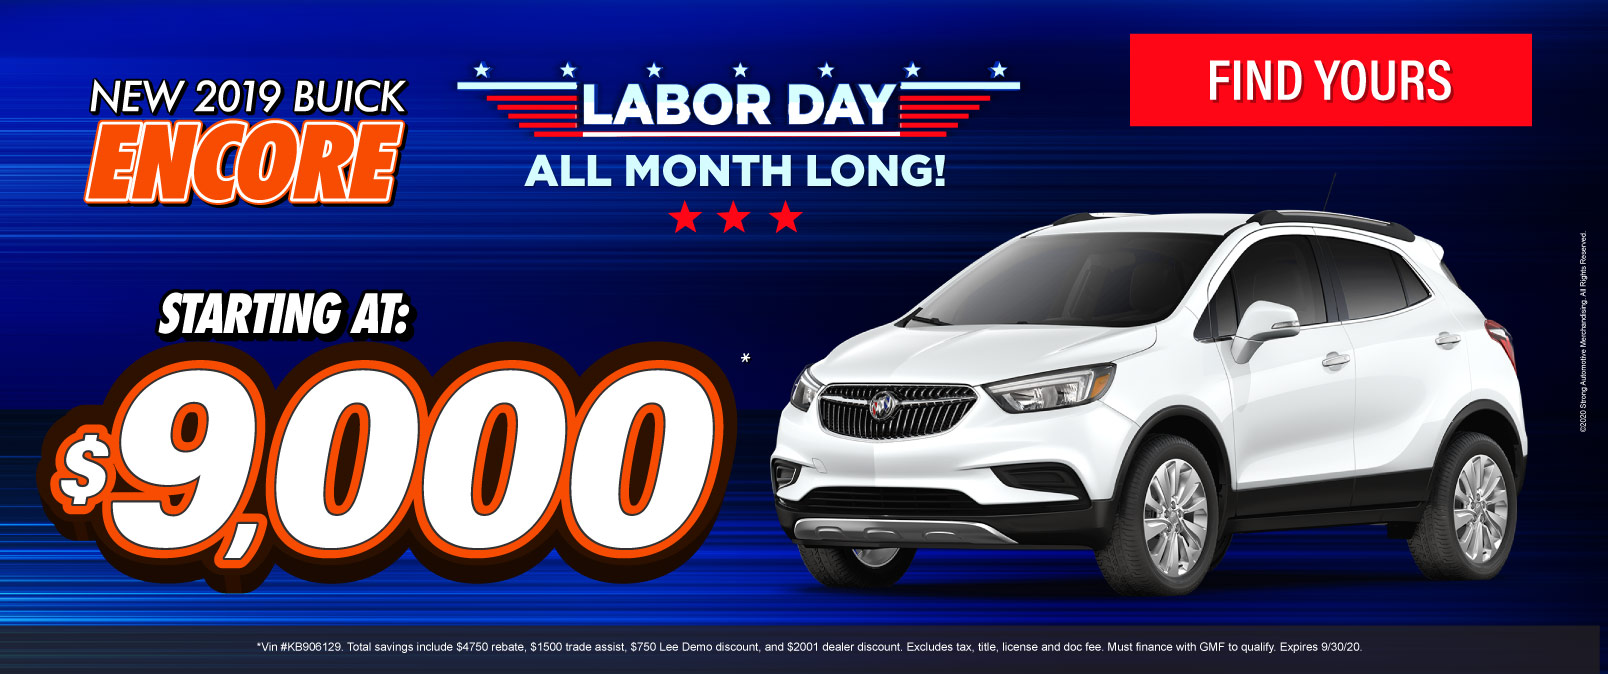 New 2019 Buick Encore - Starting at $9,000